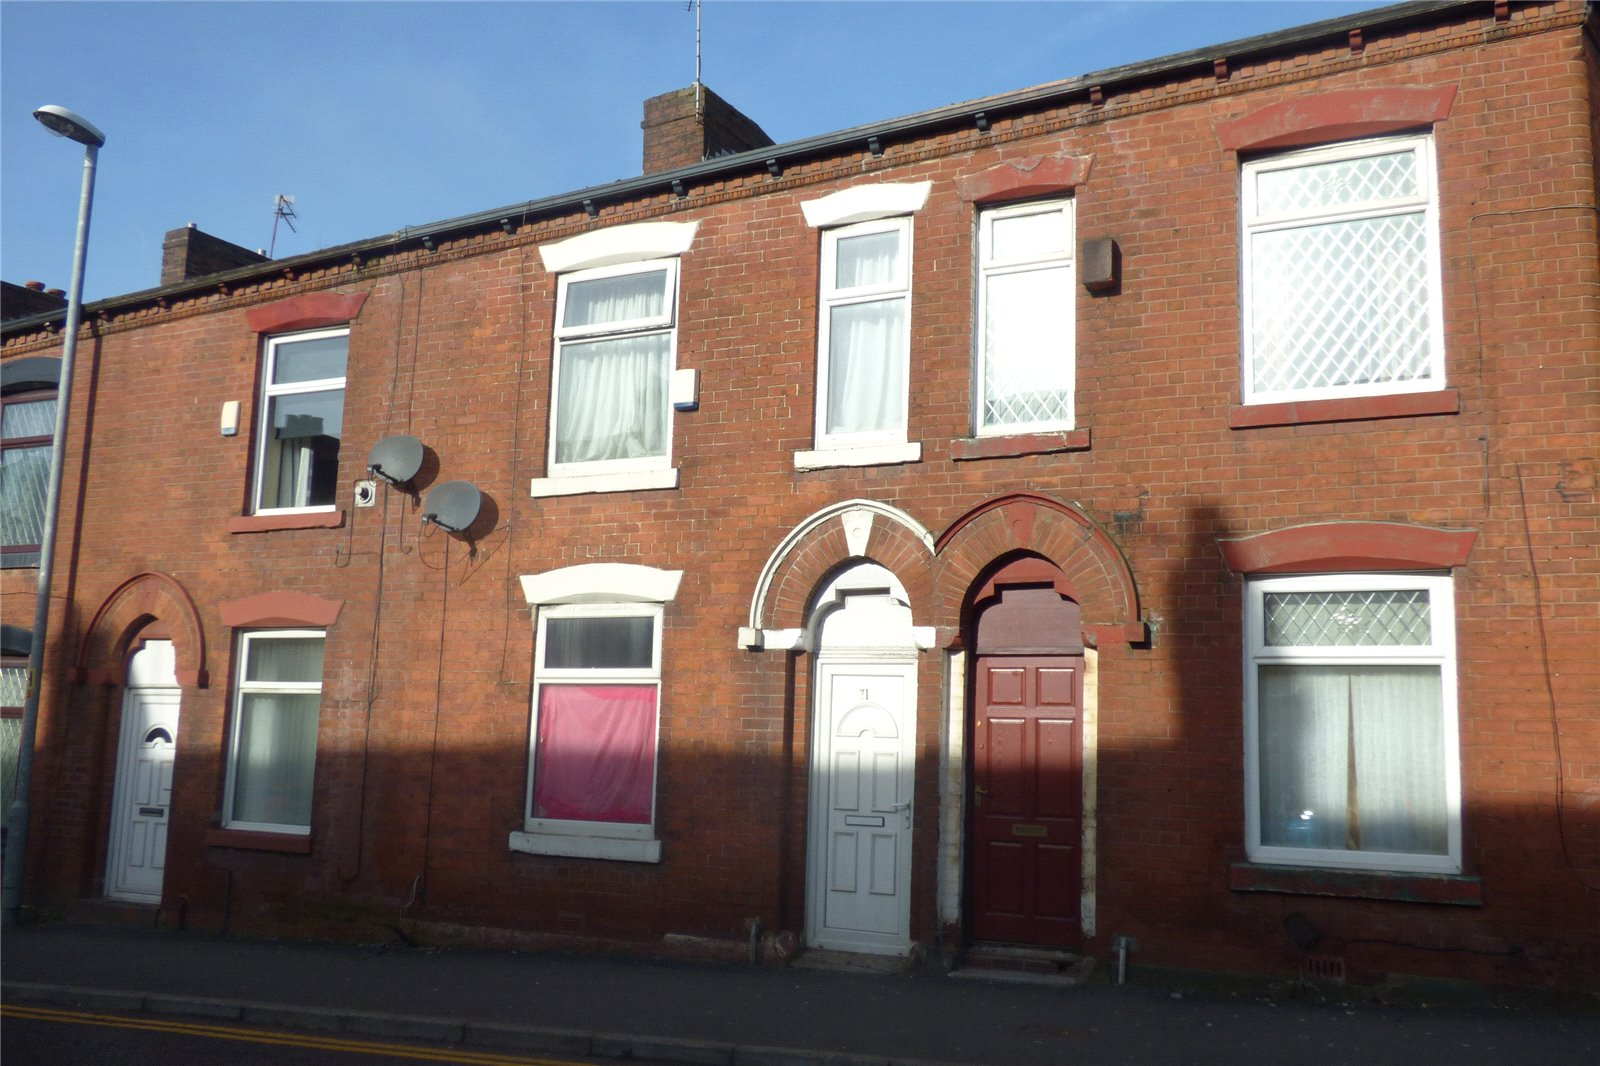 2 Bedrooms Terraced House for sale in Honeywell Lane, Hathershaw, Oldham, Greater Manchester, OL8